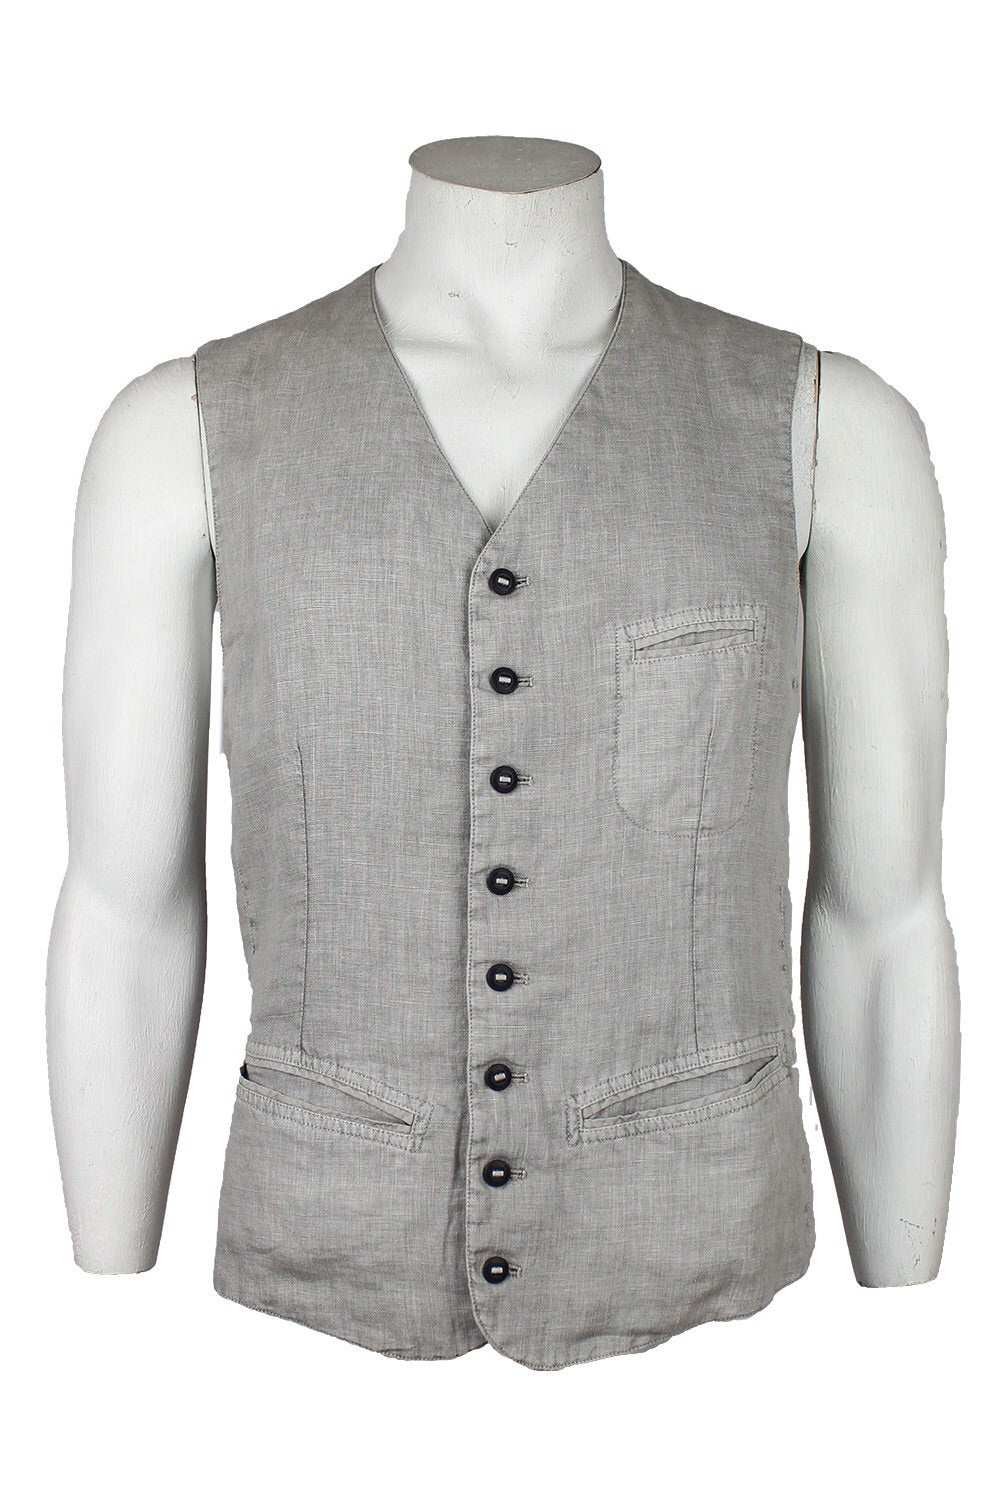 Hannes Roether Grey Linen Vest - LAST SIZES!